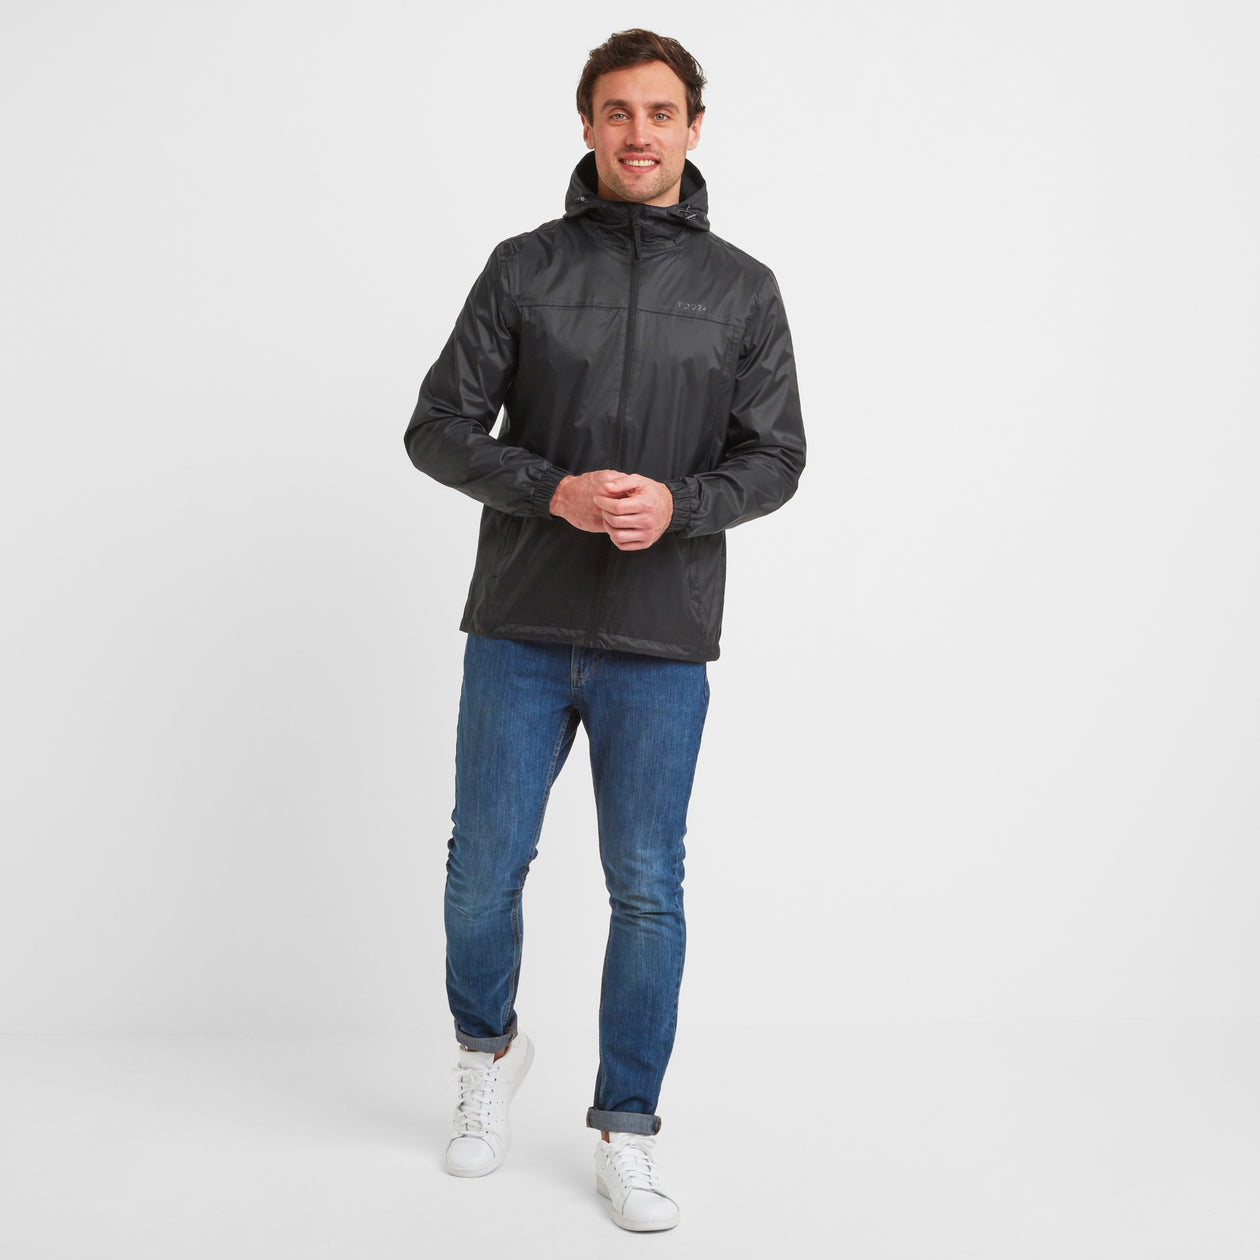 Craven Mens Waterproof Packaway Jacket - Black image 4